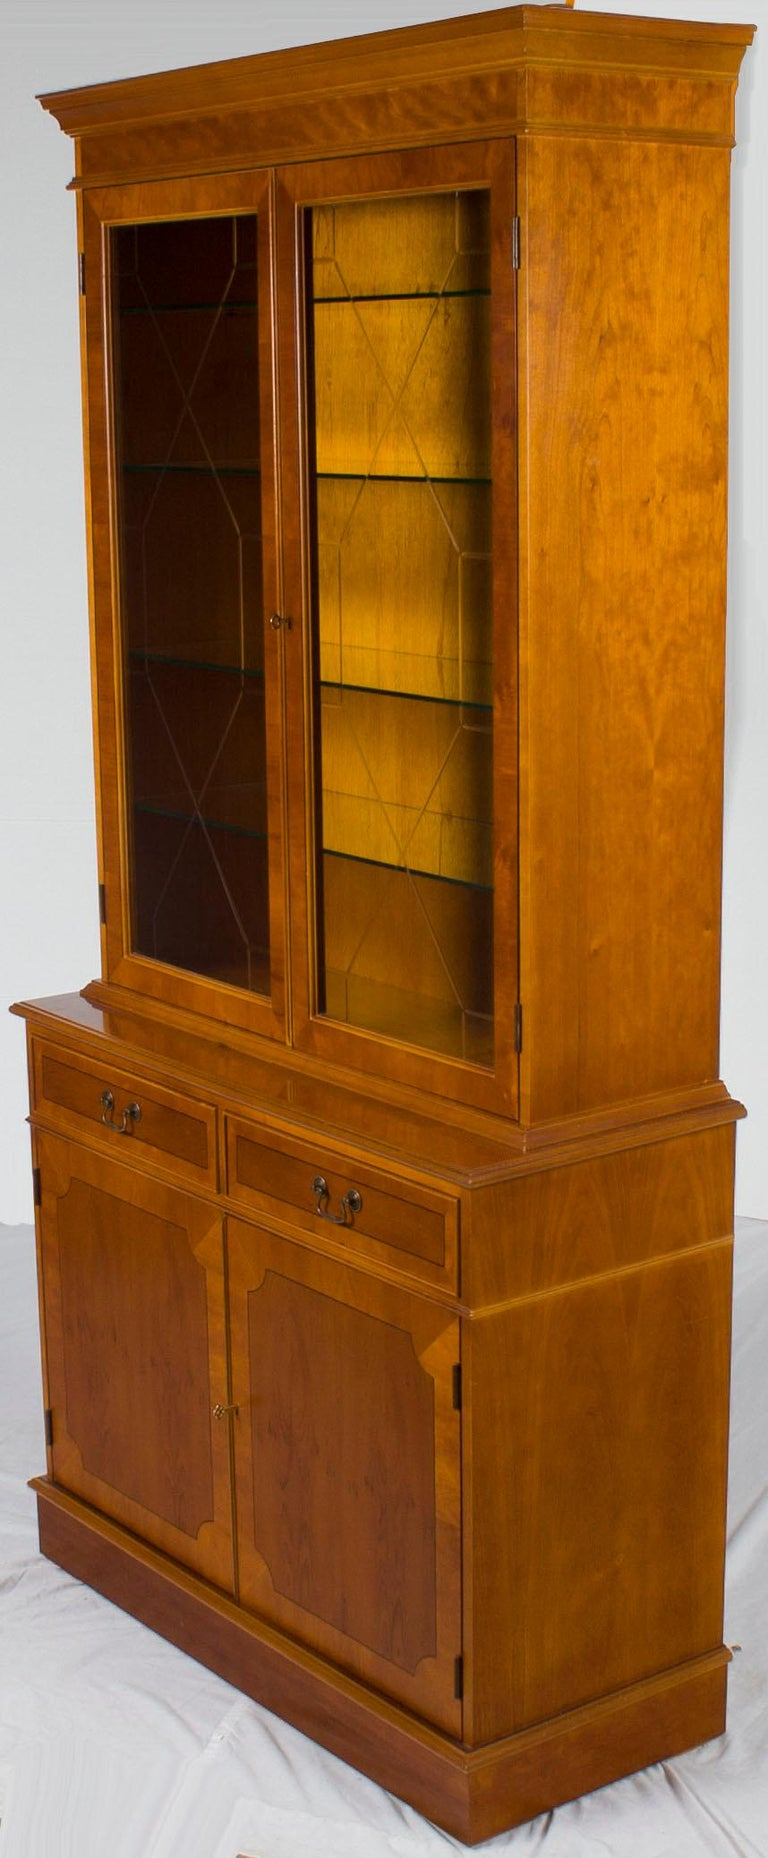 Georgian Yew Wood Two Gl Door Breakfront Small China Cabinet Bookcase For